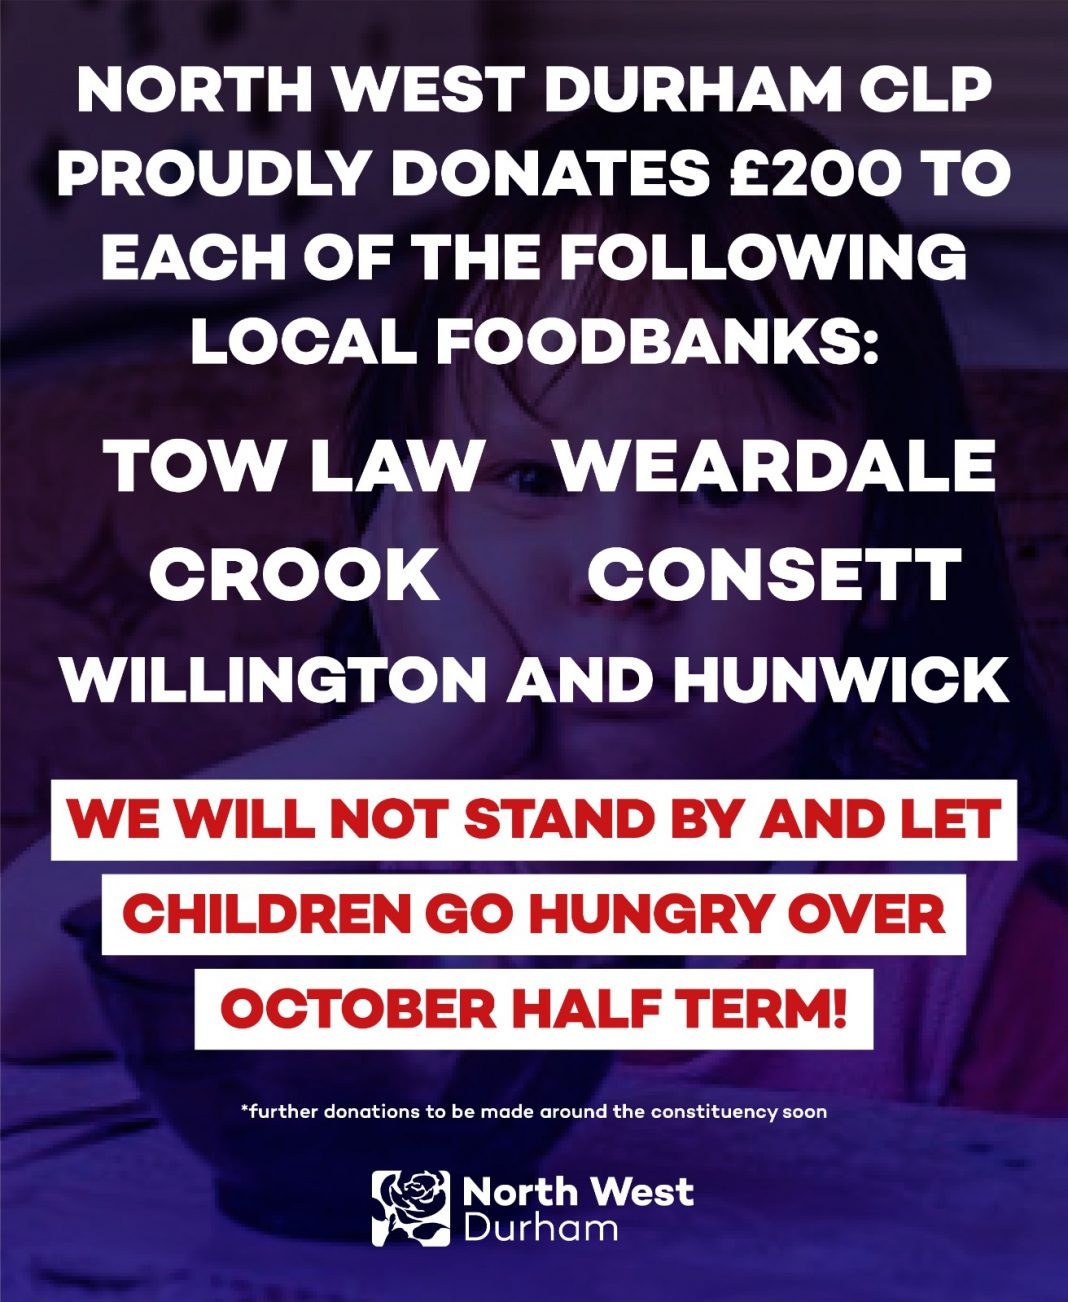 Local Food Banks Receive £1,000 From North West Durham Labour Party